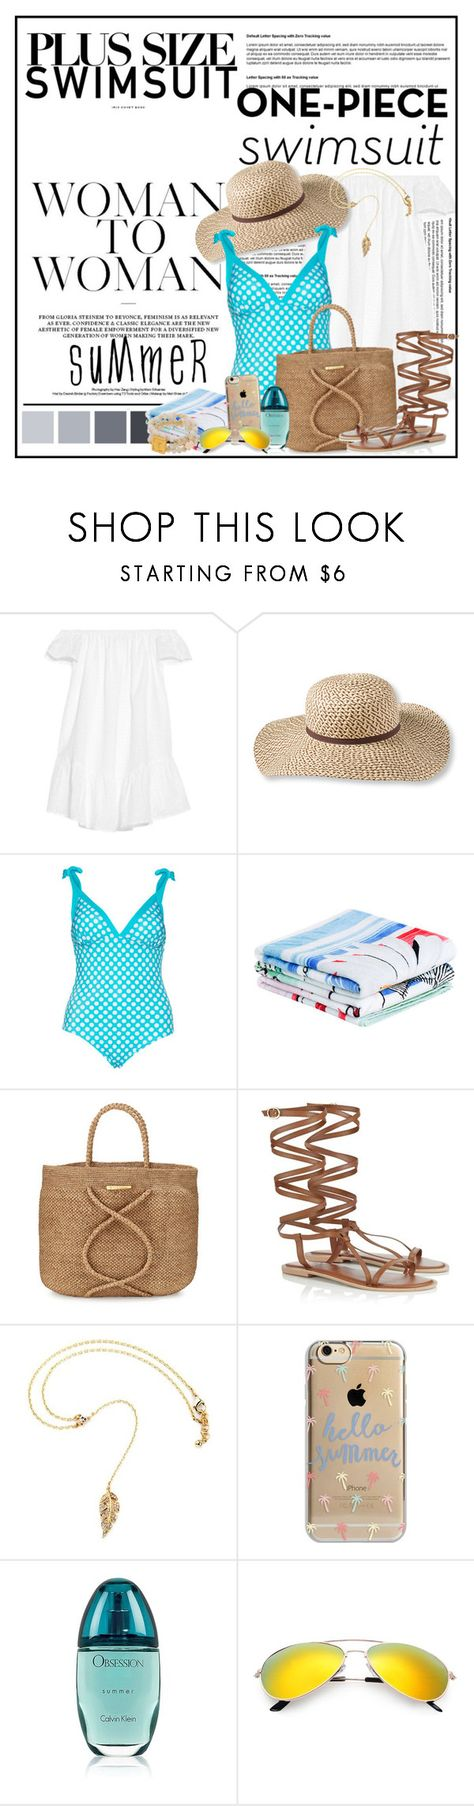 """Stylish Curves: Swimwear Edition"" by cindy88 ❤ liked on Polyvore featuring Elizabeth and James, L.L.Bean, Persona, Desigual, ViX, Lipsy, Agent 18, Calvin Klein, stylishcurves and plussizeswimsuit"